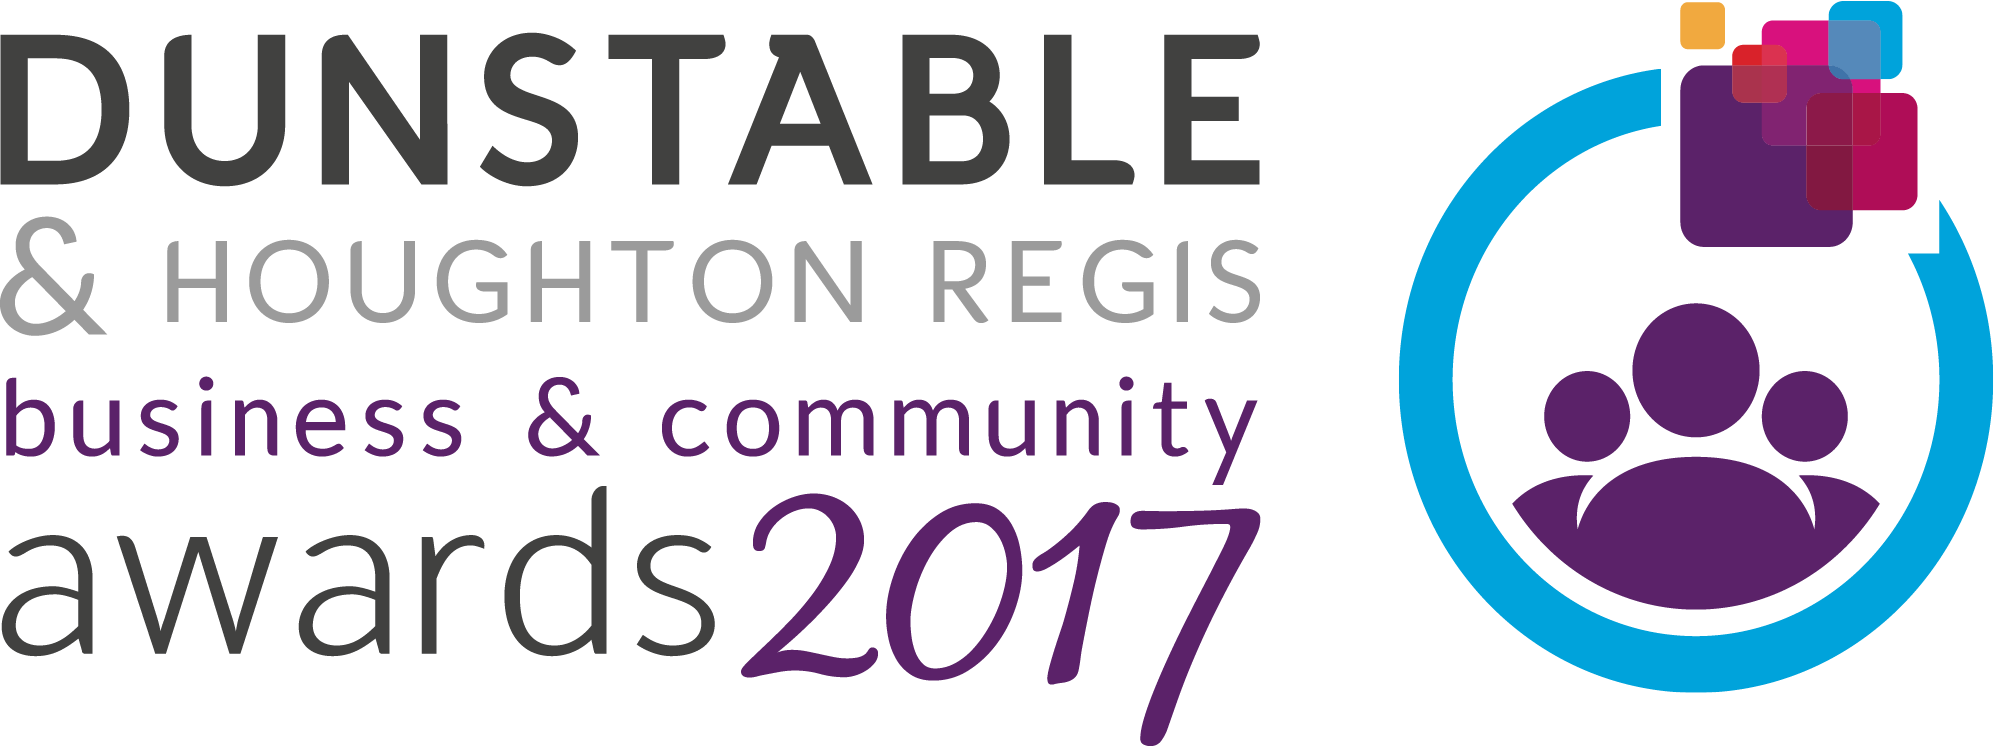 Dunstable and Houghton Regis business & community awards 2017-01.png